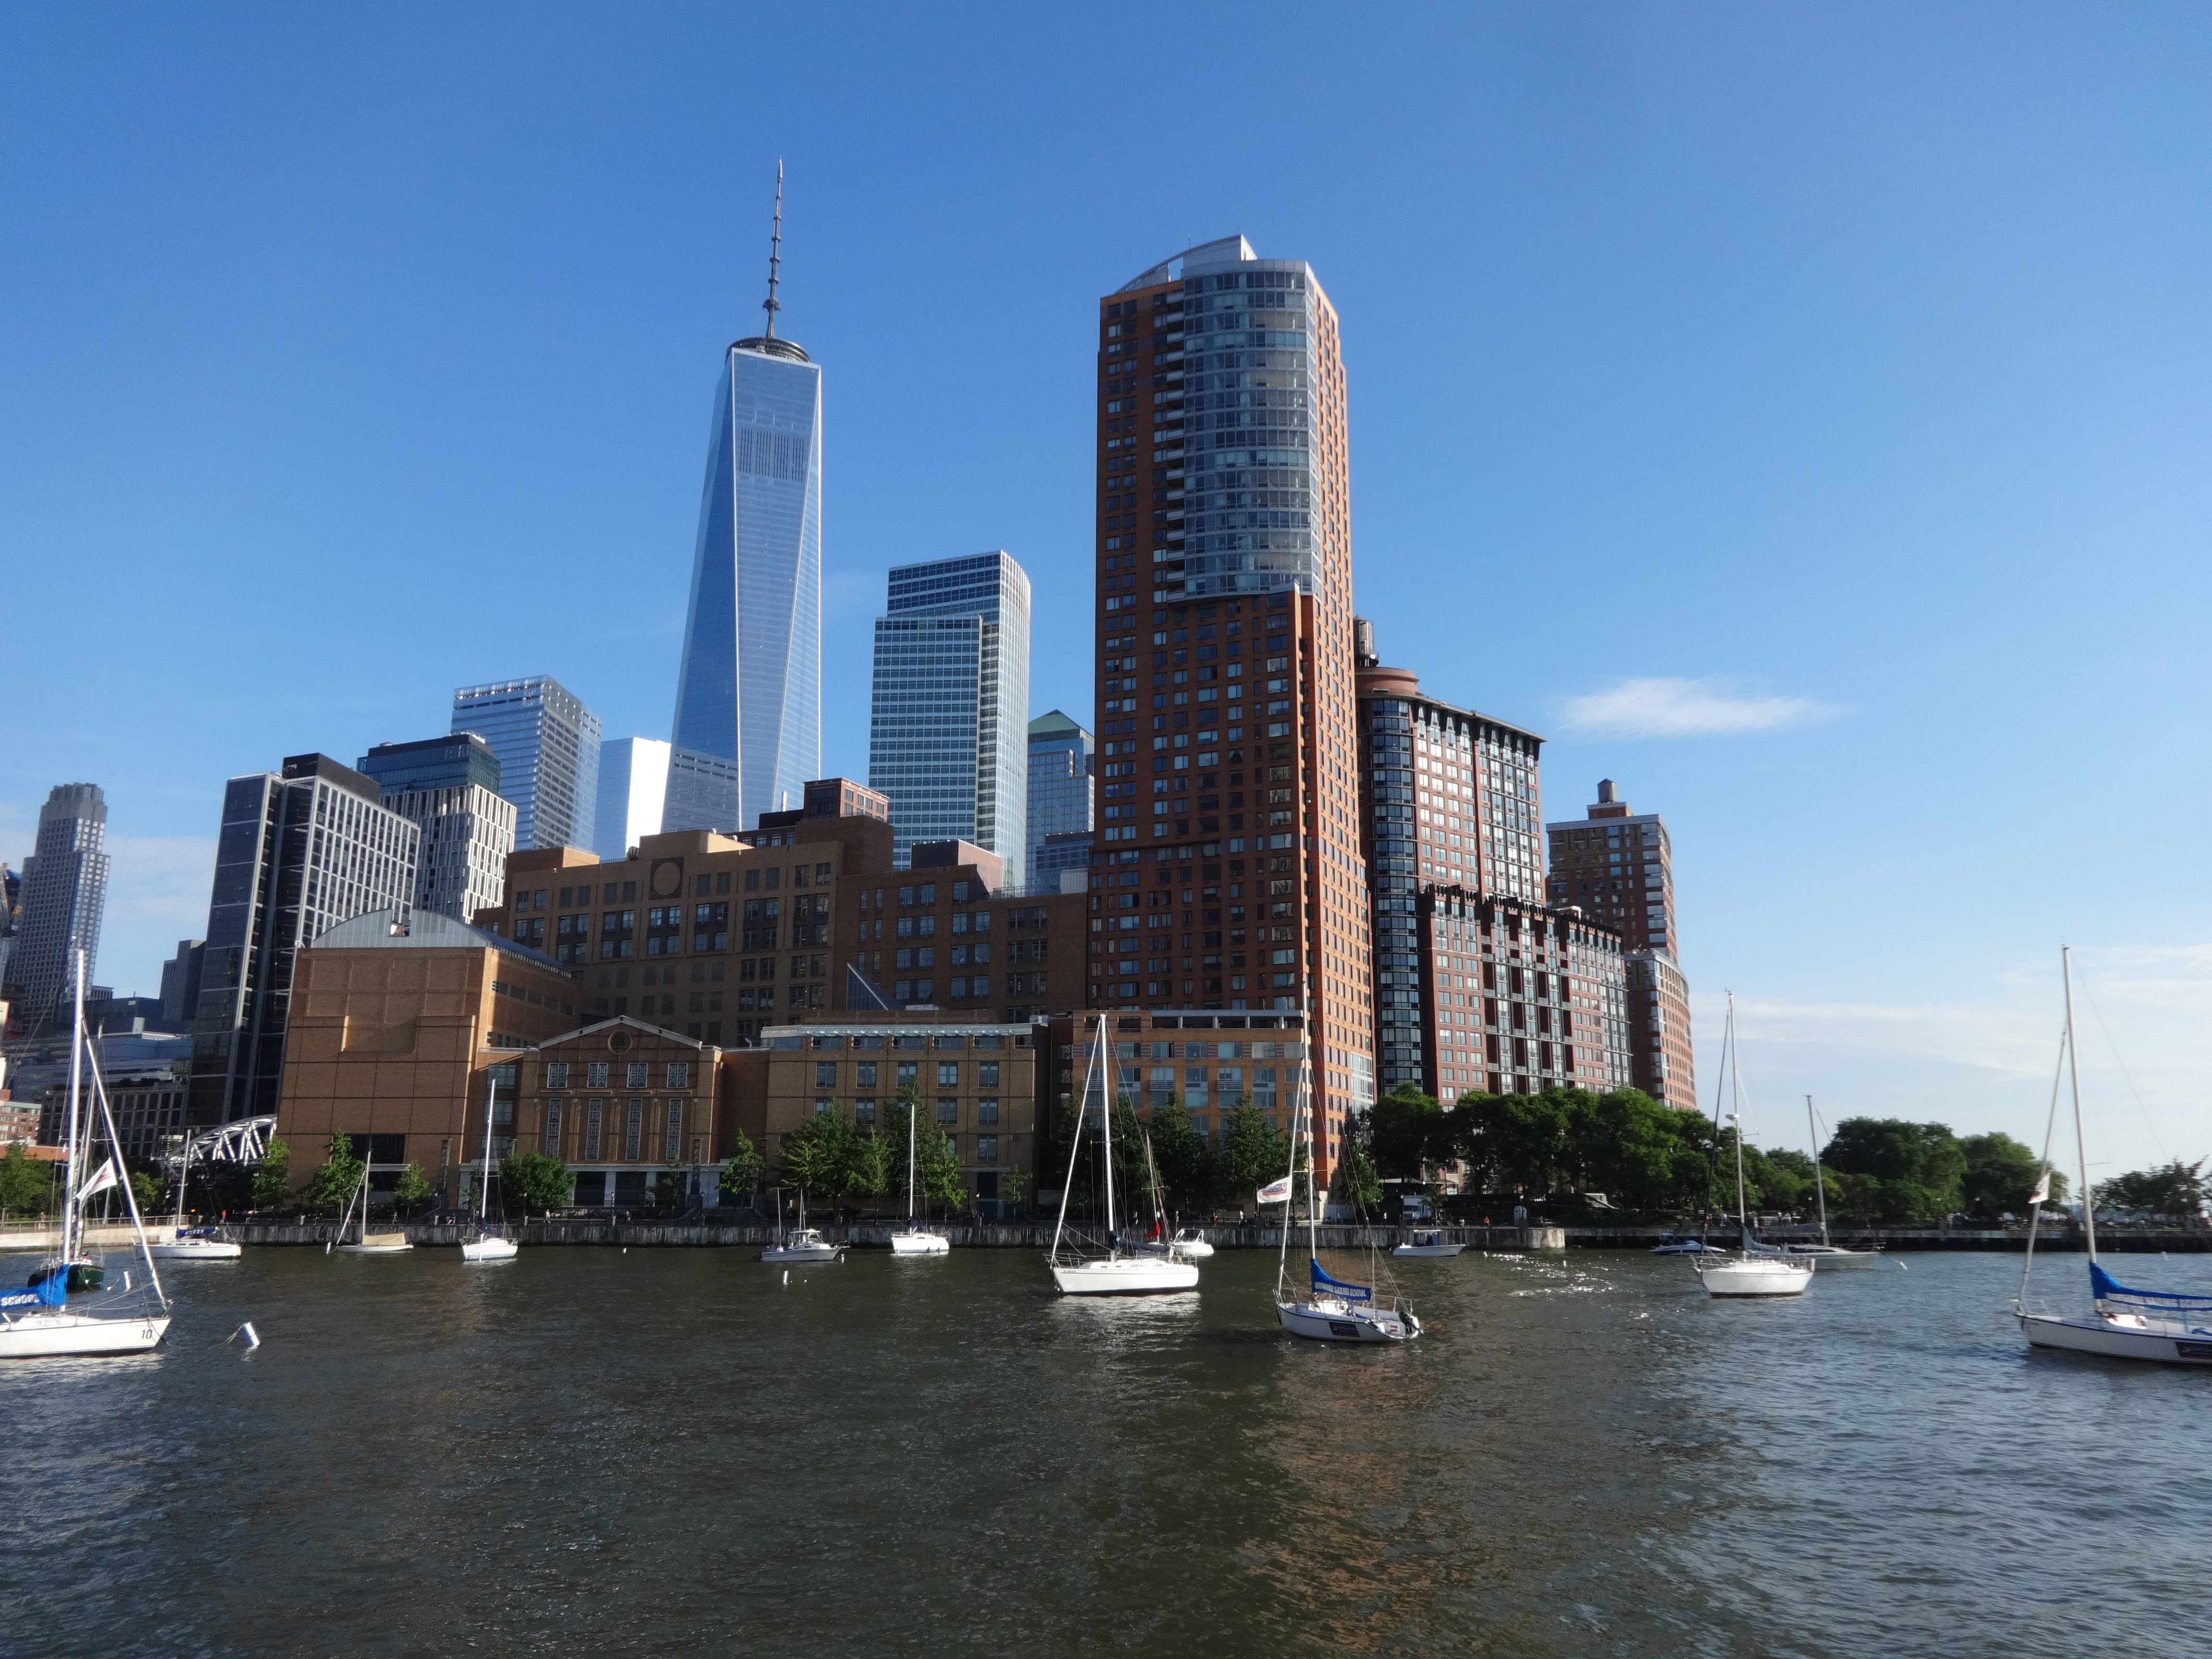 41 River Terrace from Pier 25